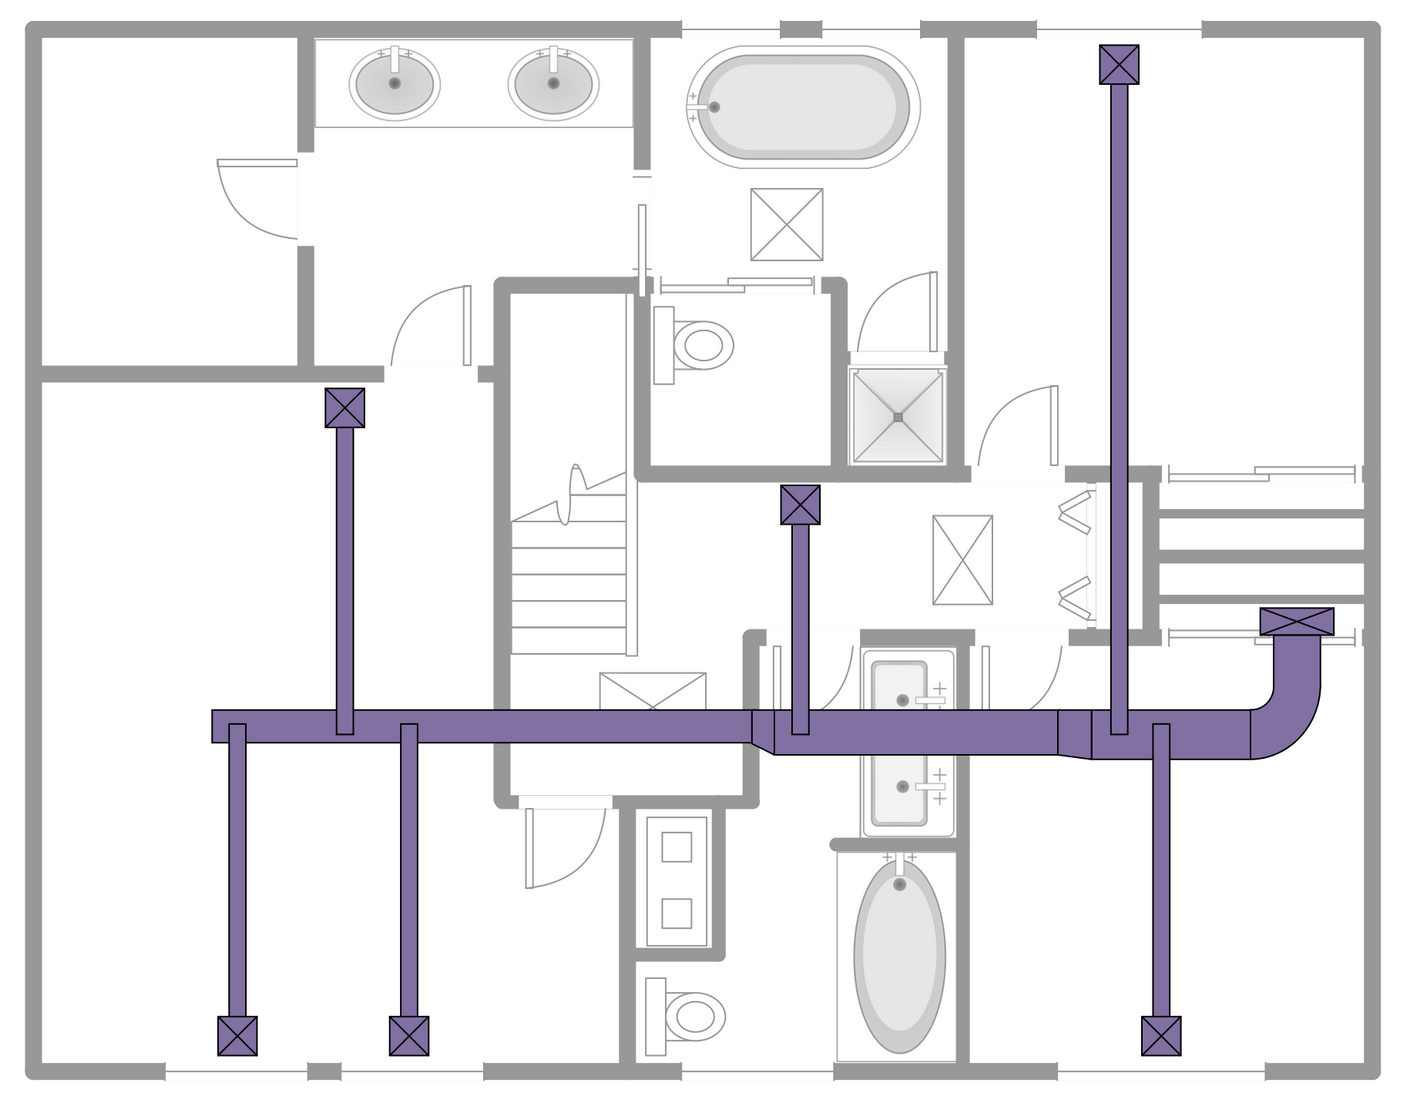 hvac plans solution | conceptdraw.com drawing of hvac hvac duct drawing